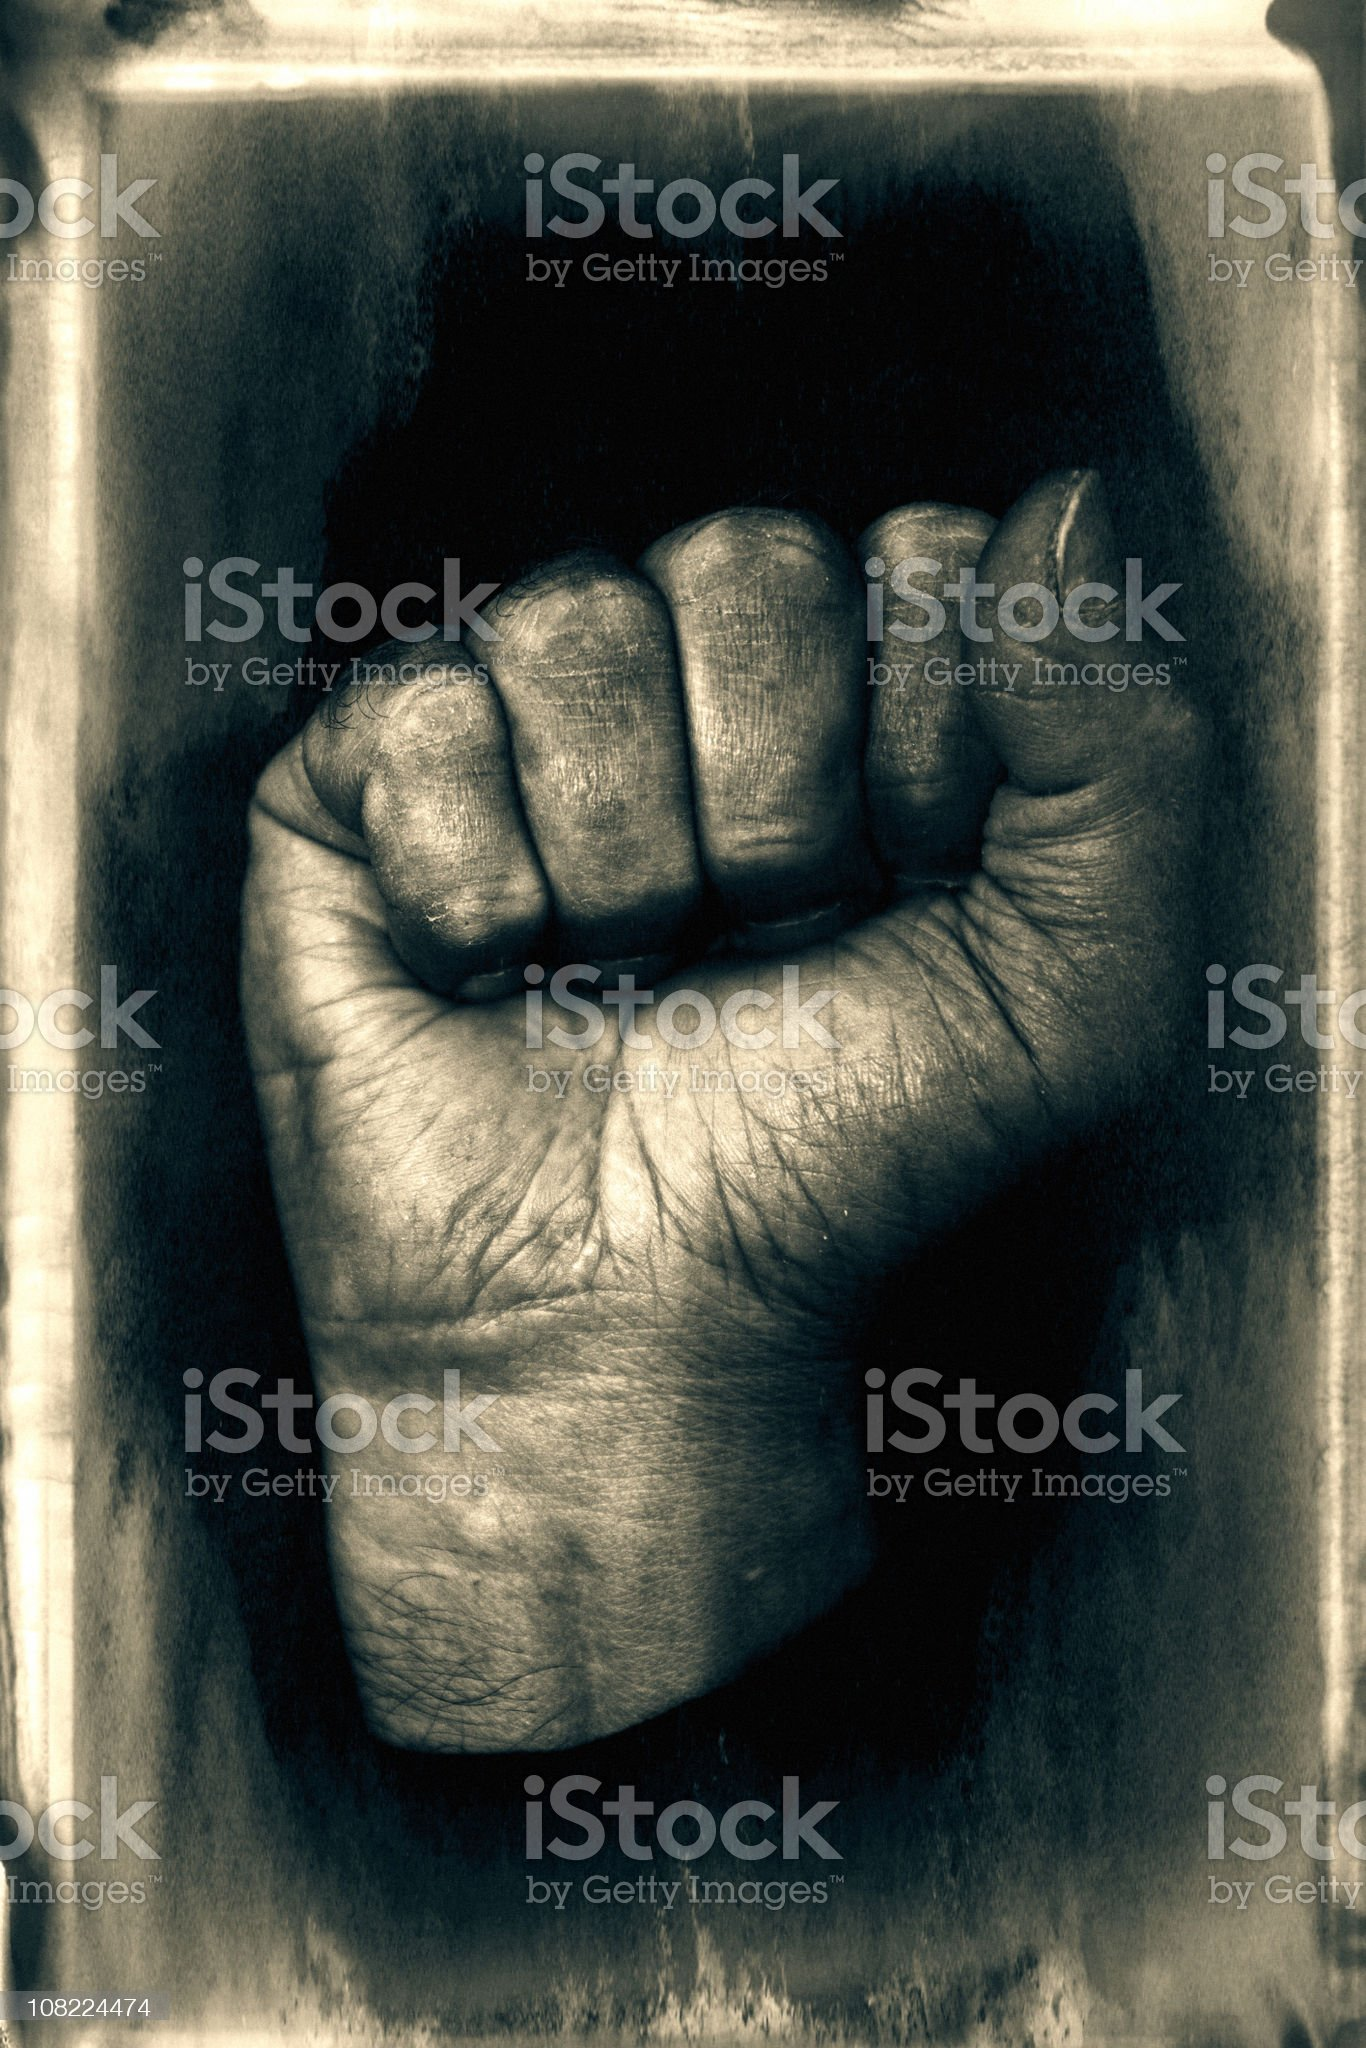 Portrait of Clenched Human Fist, Black and White royalty-free stock photo